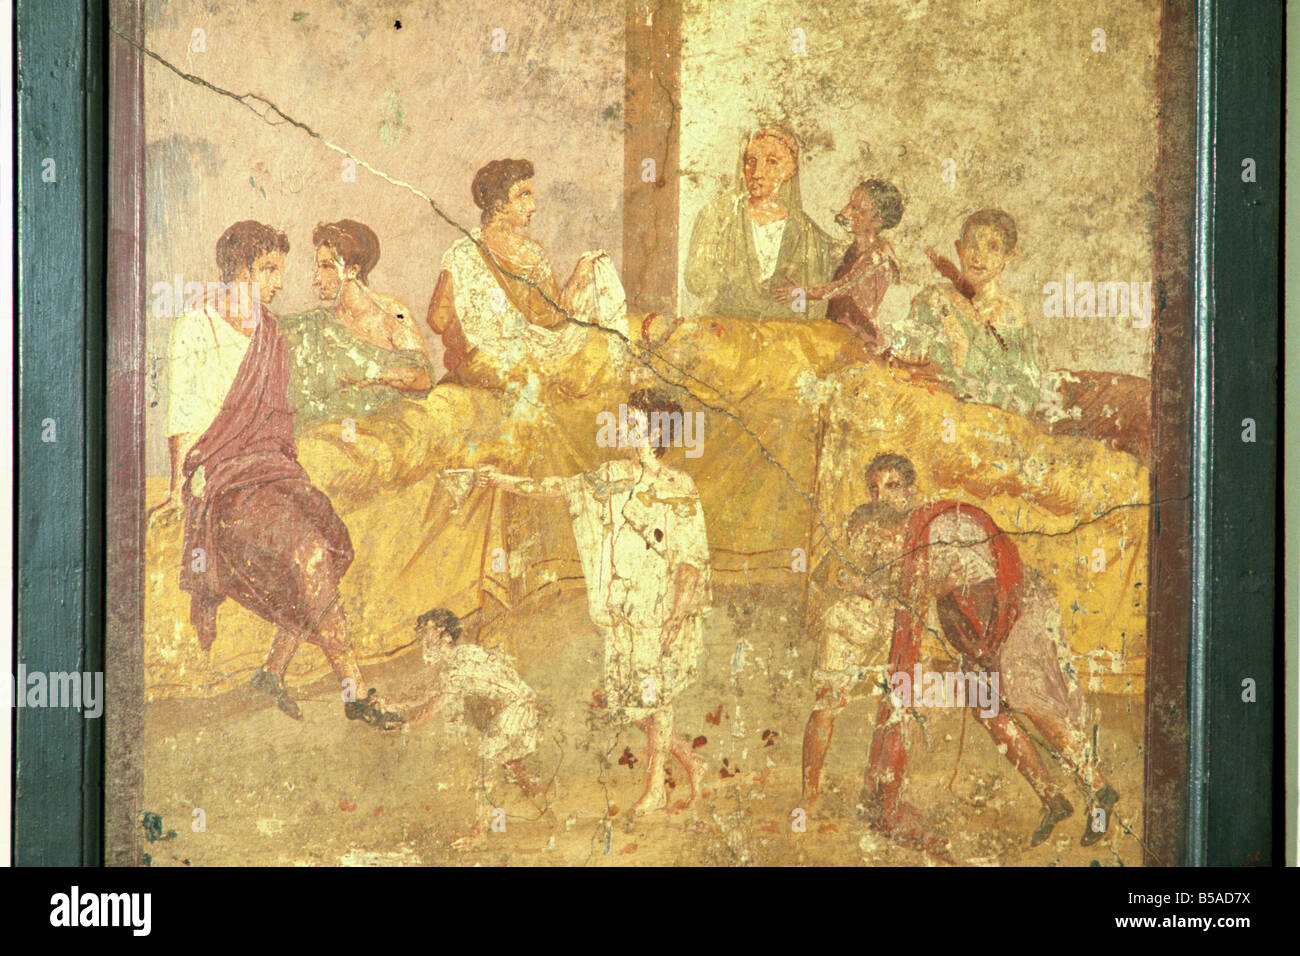 Wall painting from Pompeii in Campania Italy W Rawlings Stock Photo ...